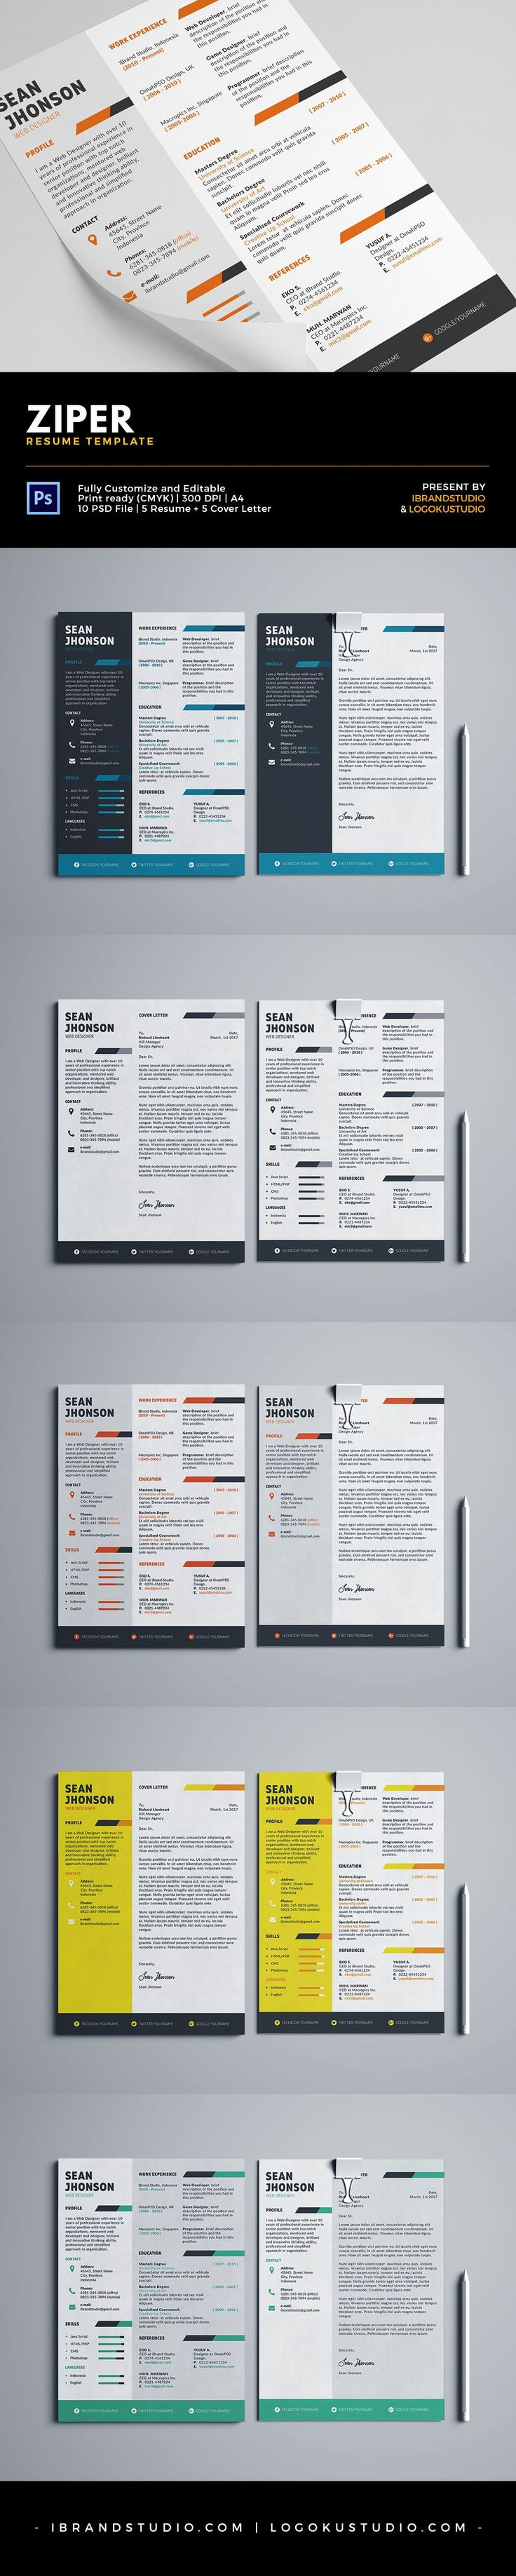 cover letter sample for job application for freshers%0A Free Ziper Resume Template and Cover Letter  PSD